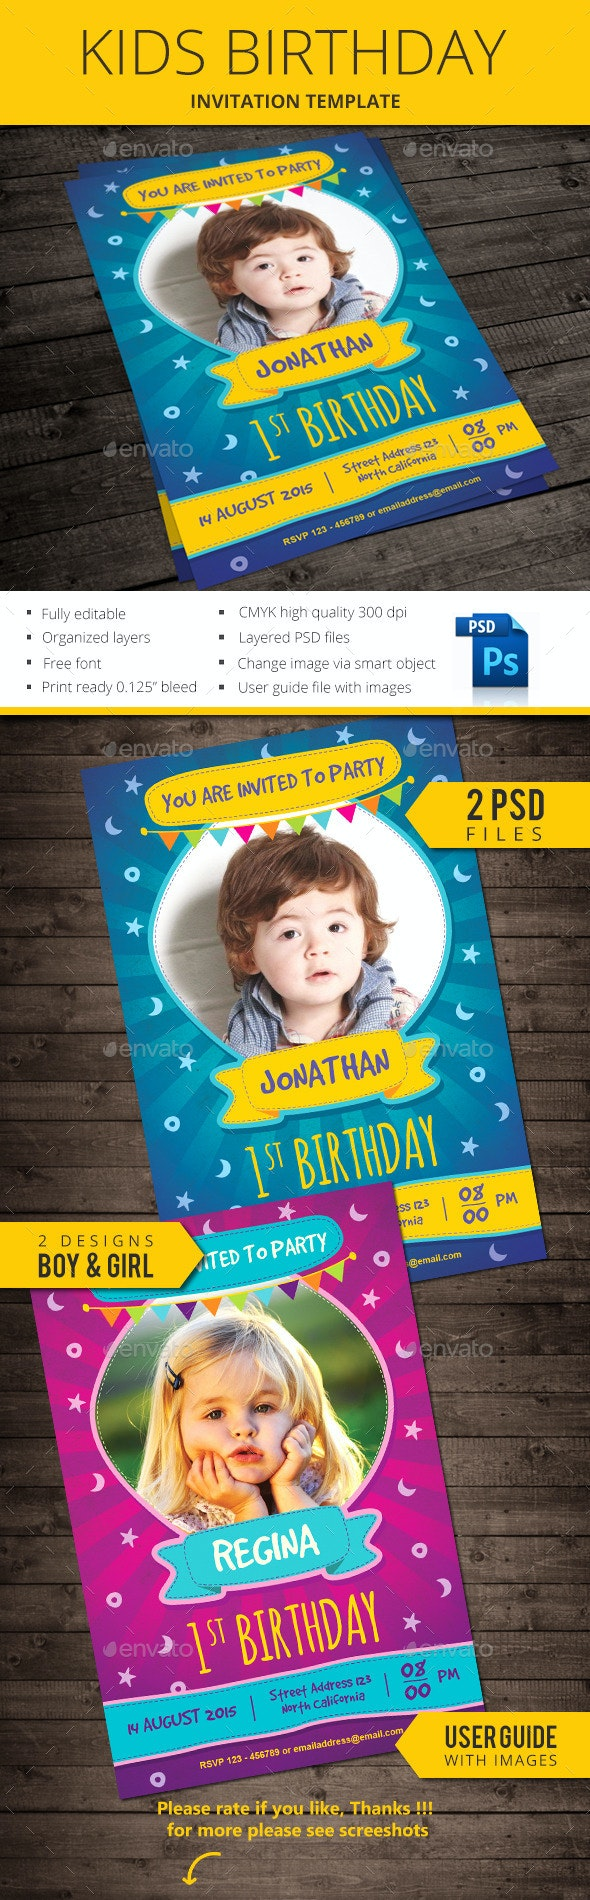 Kids Birthday Invitation - Birthday Greeting Cards